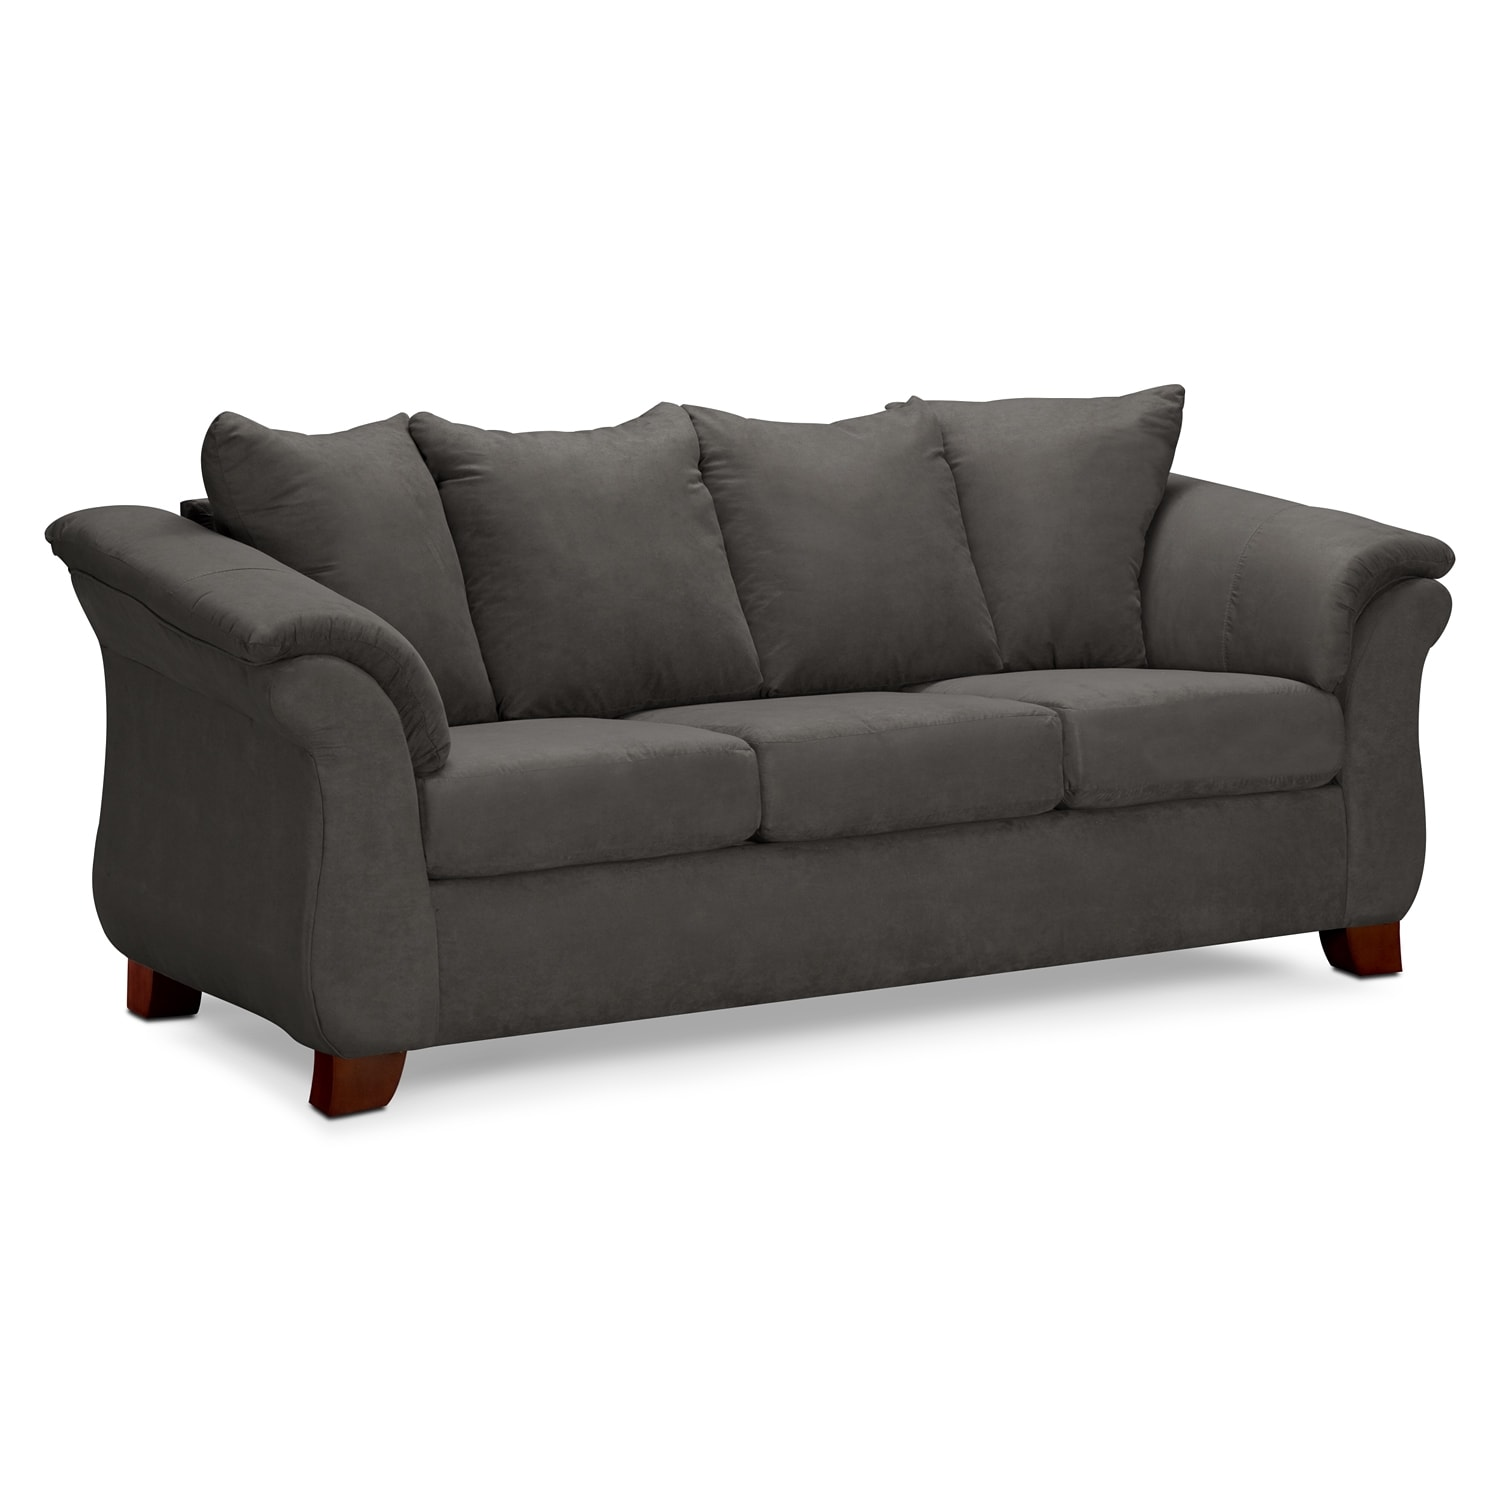 Adrian Graphite Sofa Value City Furniture